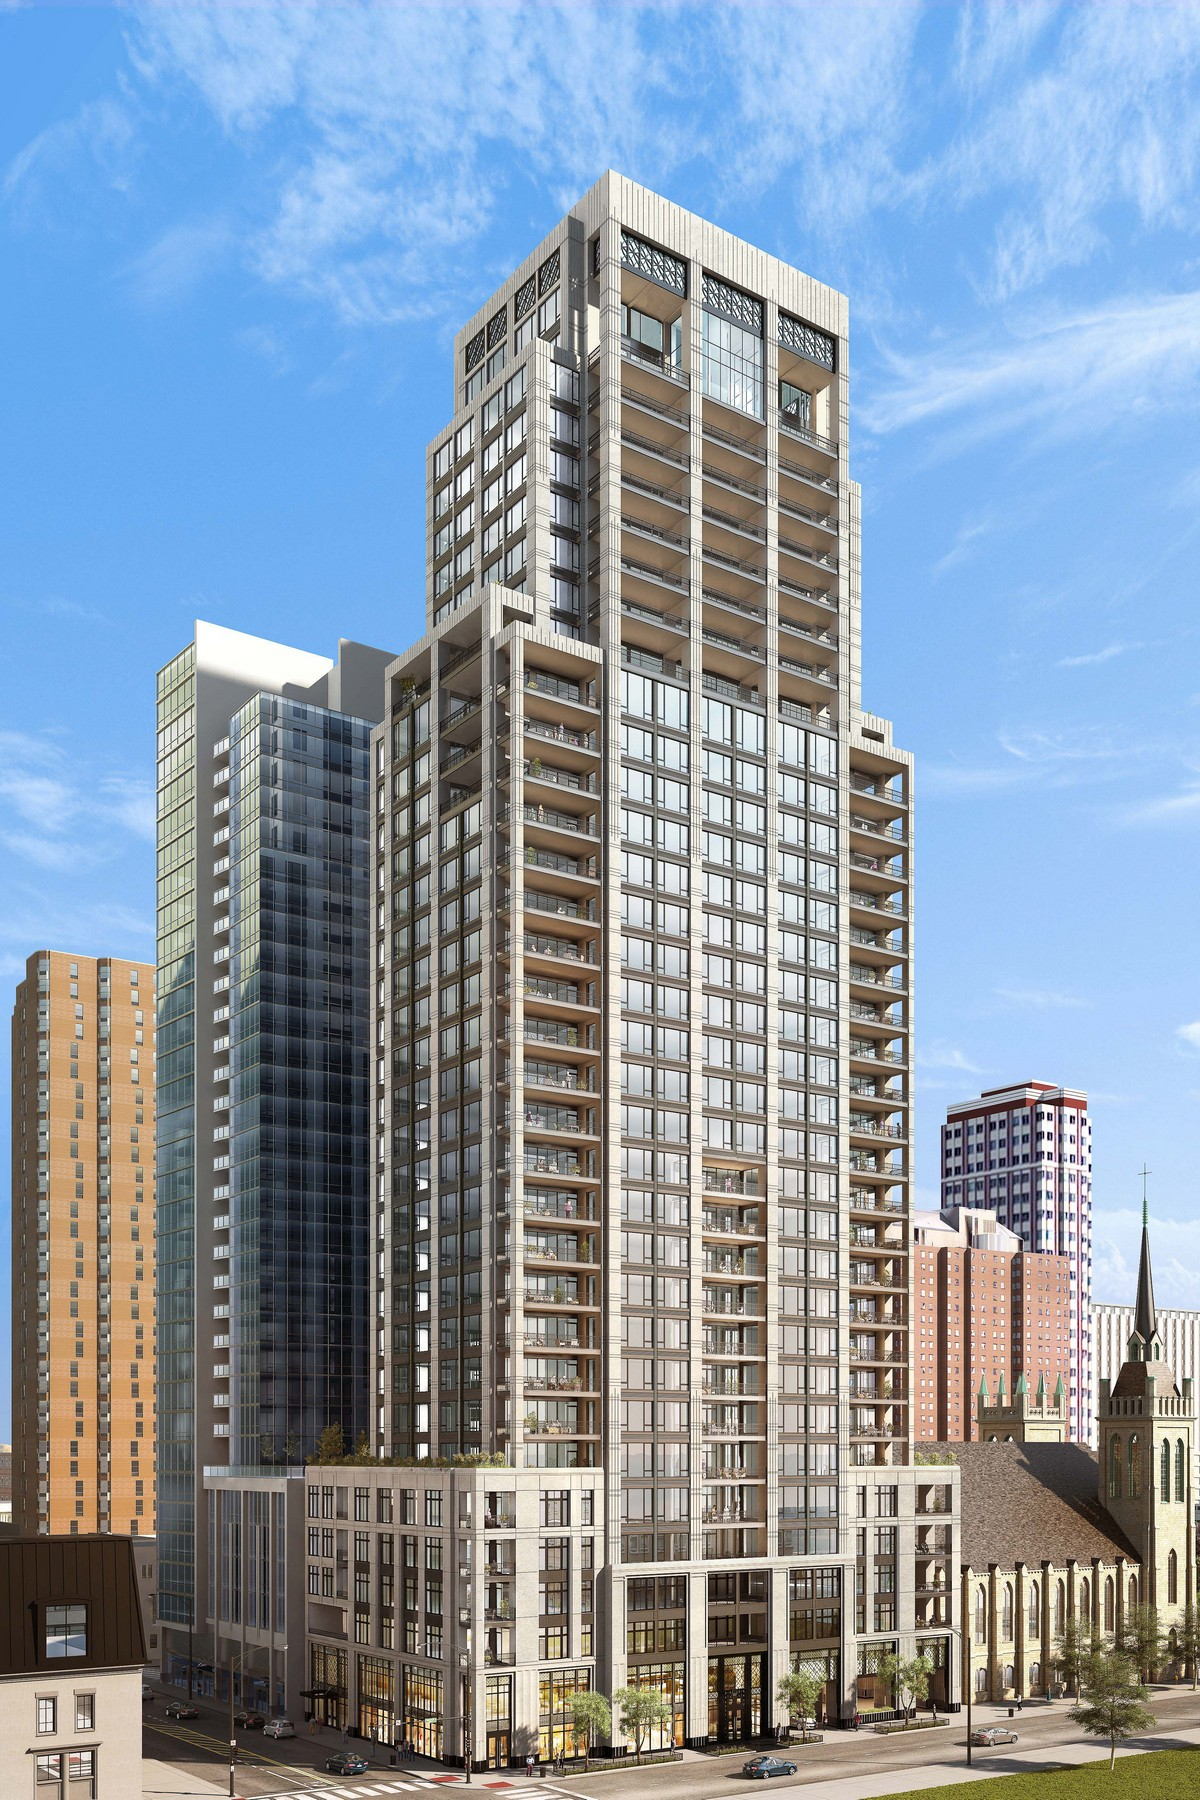 Condominium for Sale at No. 9 Walton 9 W Walton Street Unit 501 Near North Side, Chicago, Illinois, 60610 United States